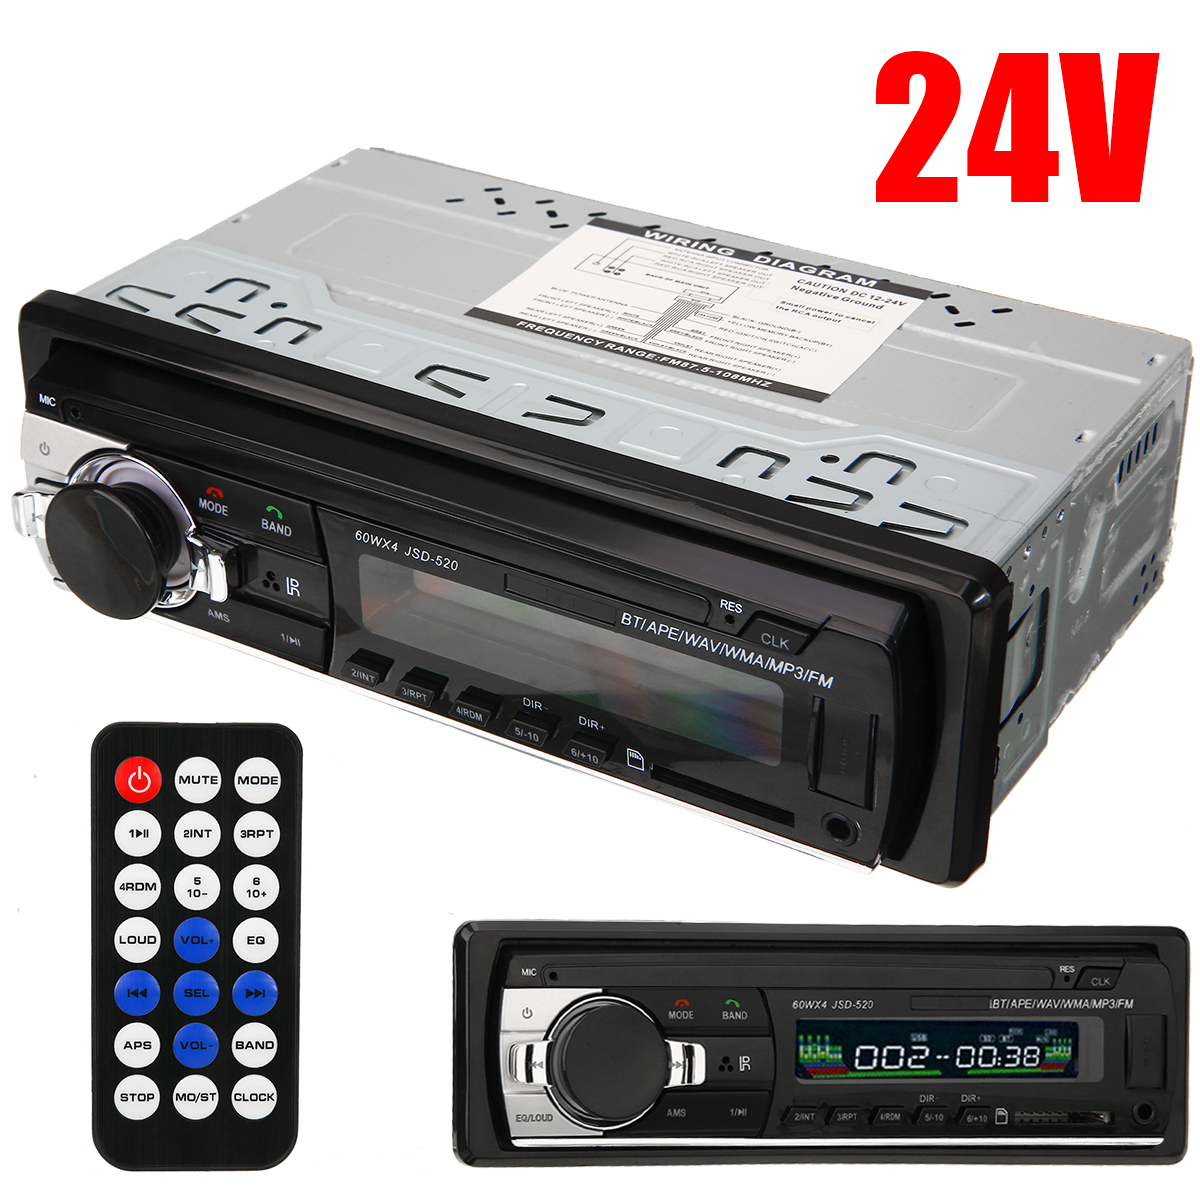 Car Electronics Radios 1pc JSD-520 24V Car bluetooth Stereo MP3 Player FM Radio USB SD AUX + Remote image